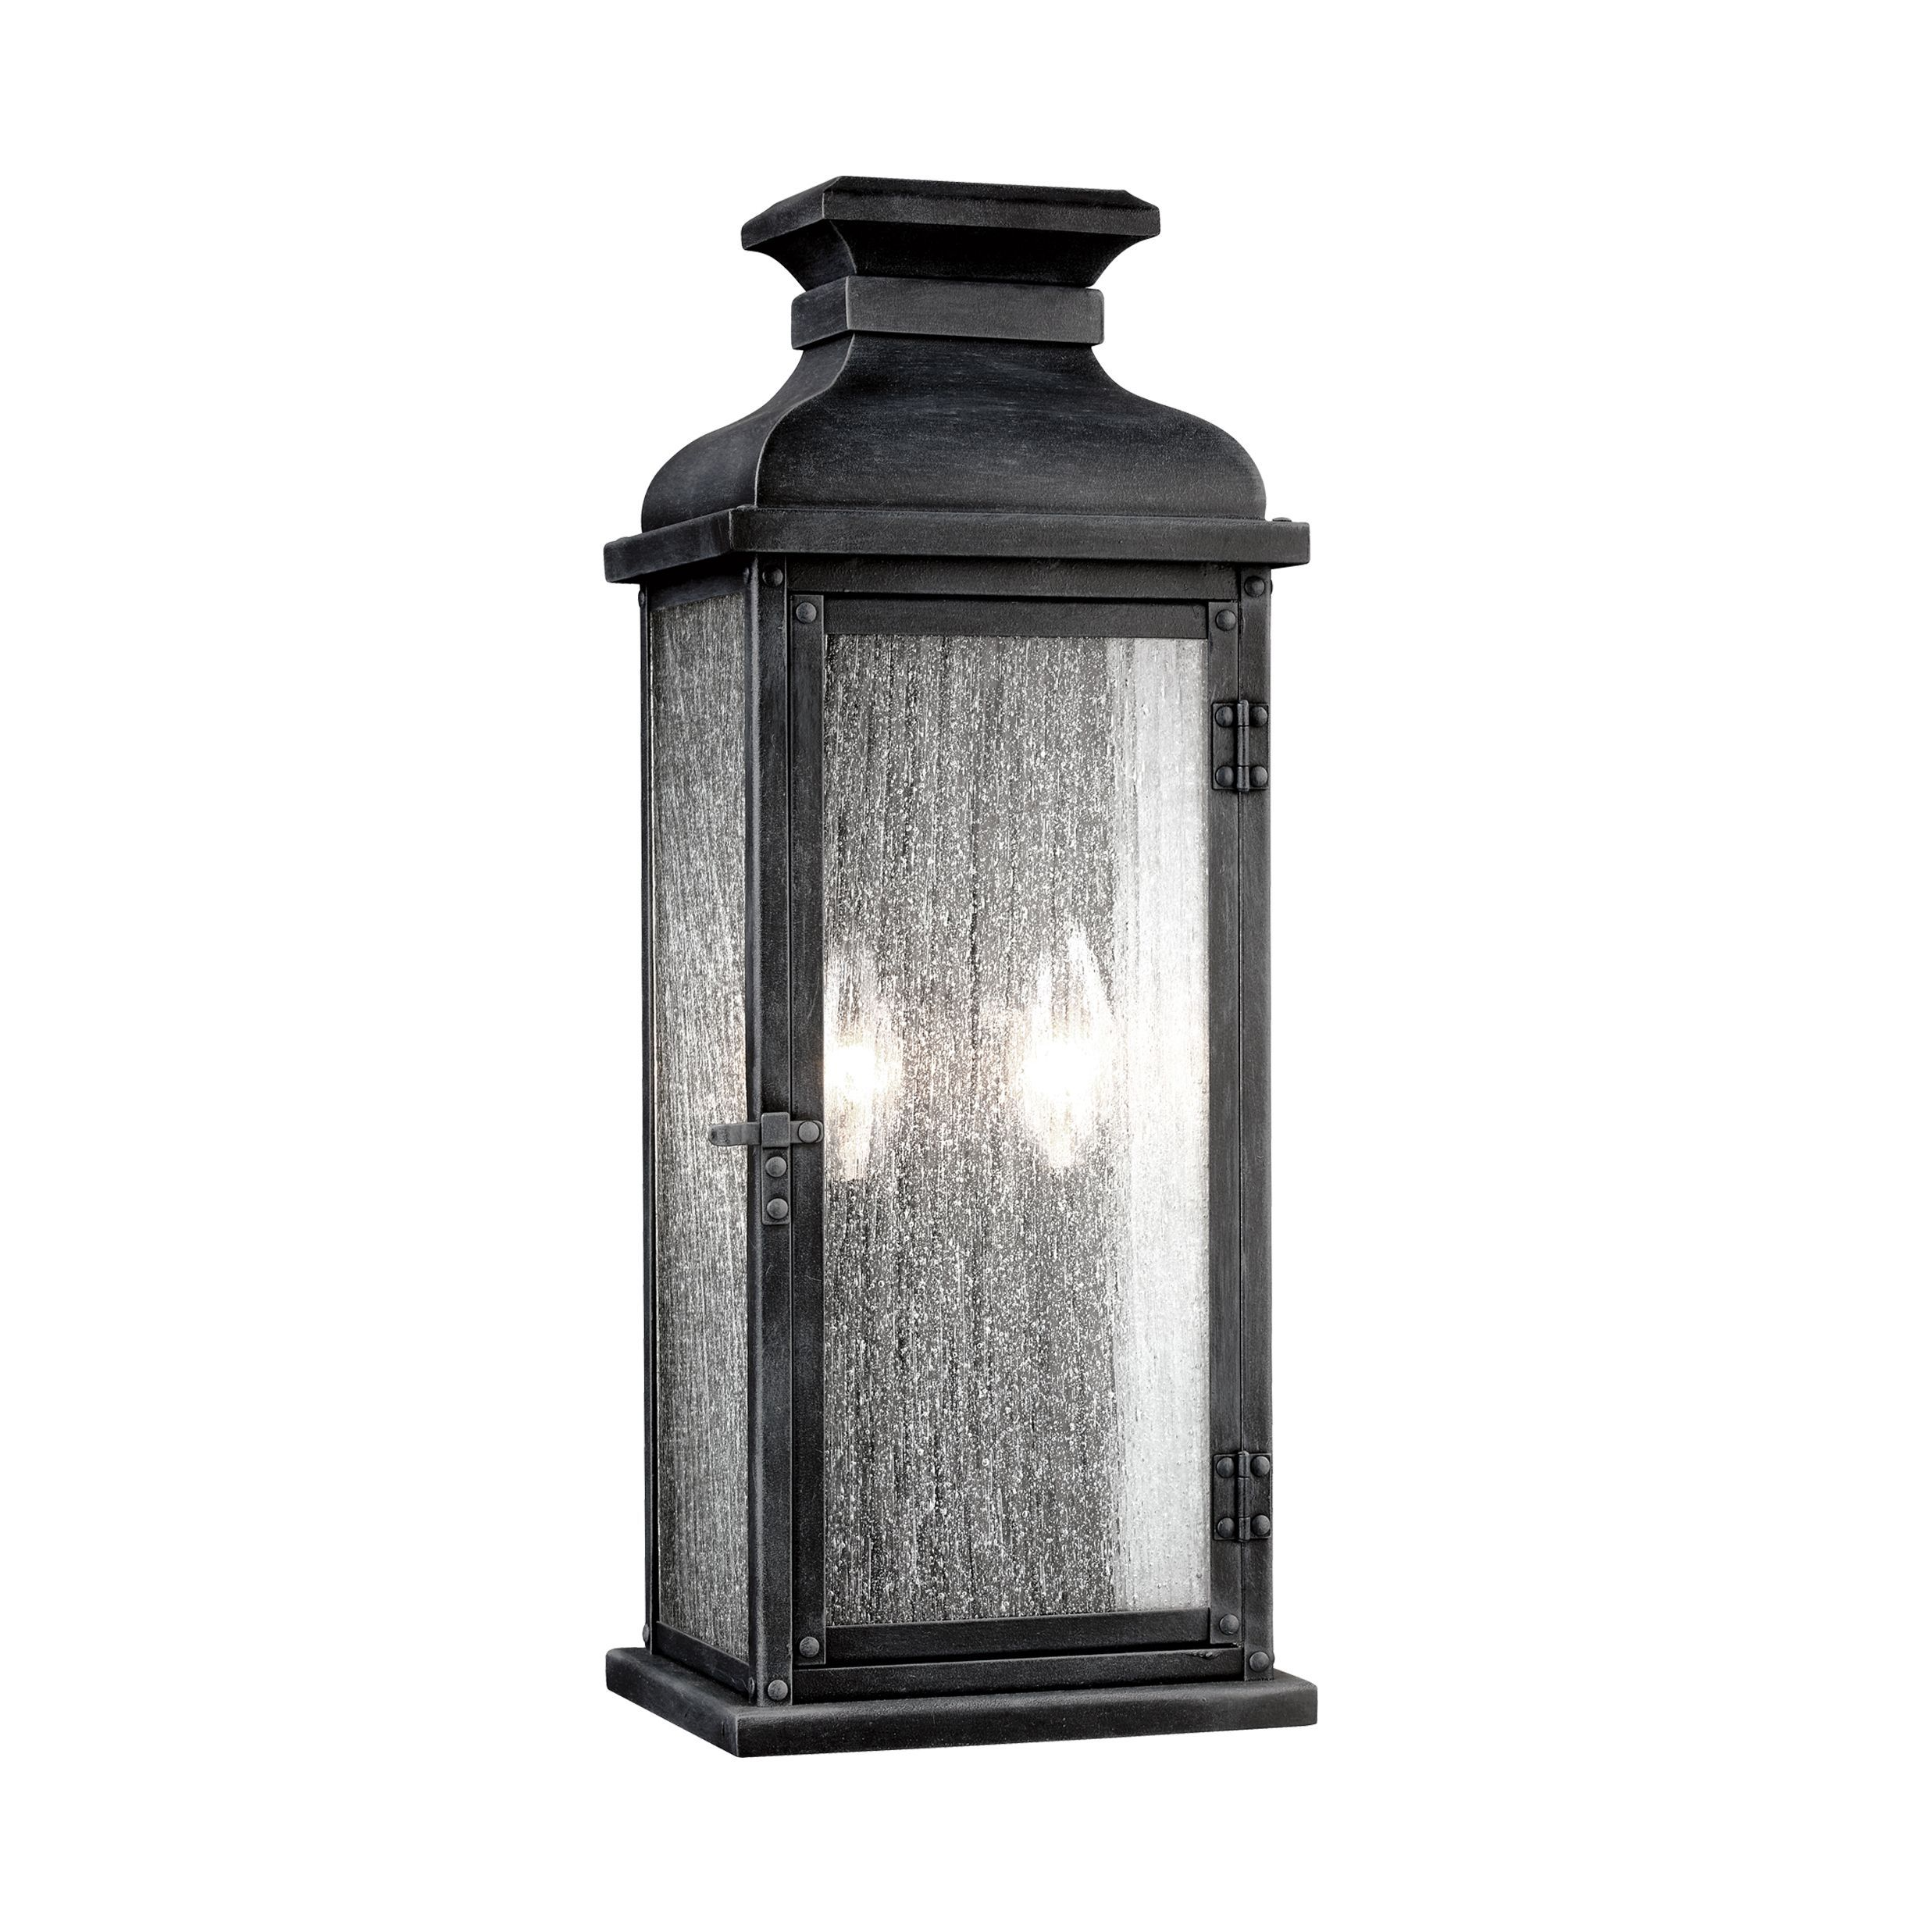 lowes oversized wall sconces for up of to christmas sensor outdoor houses garage lights motion exterior dusk down full light size dawn lighting sconce